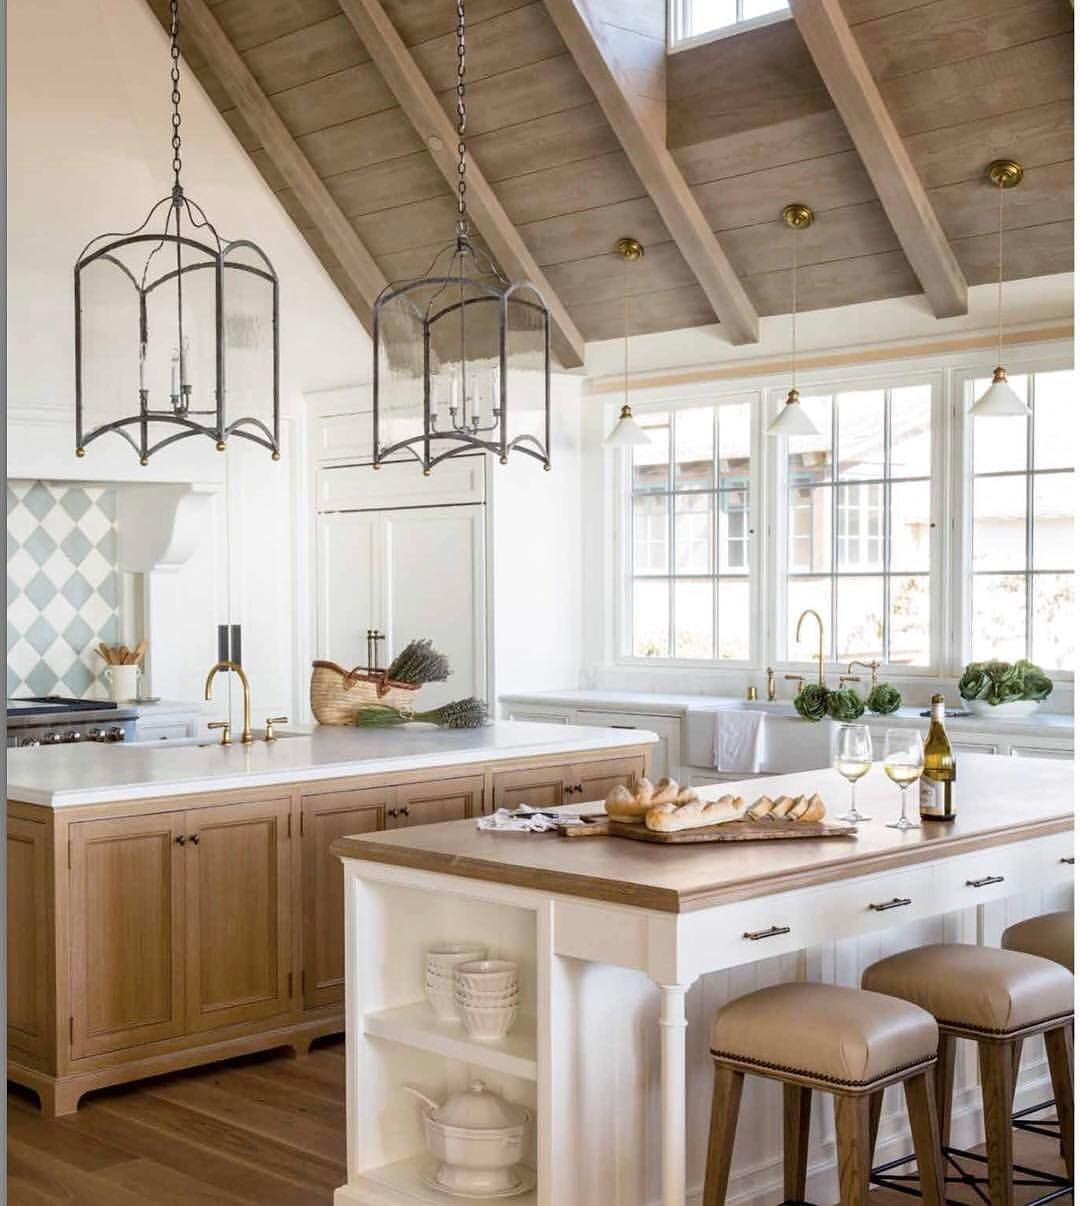 White and rustic wood kitchen with lantern pendant lighting | Decor ...